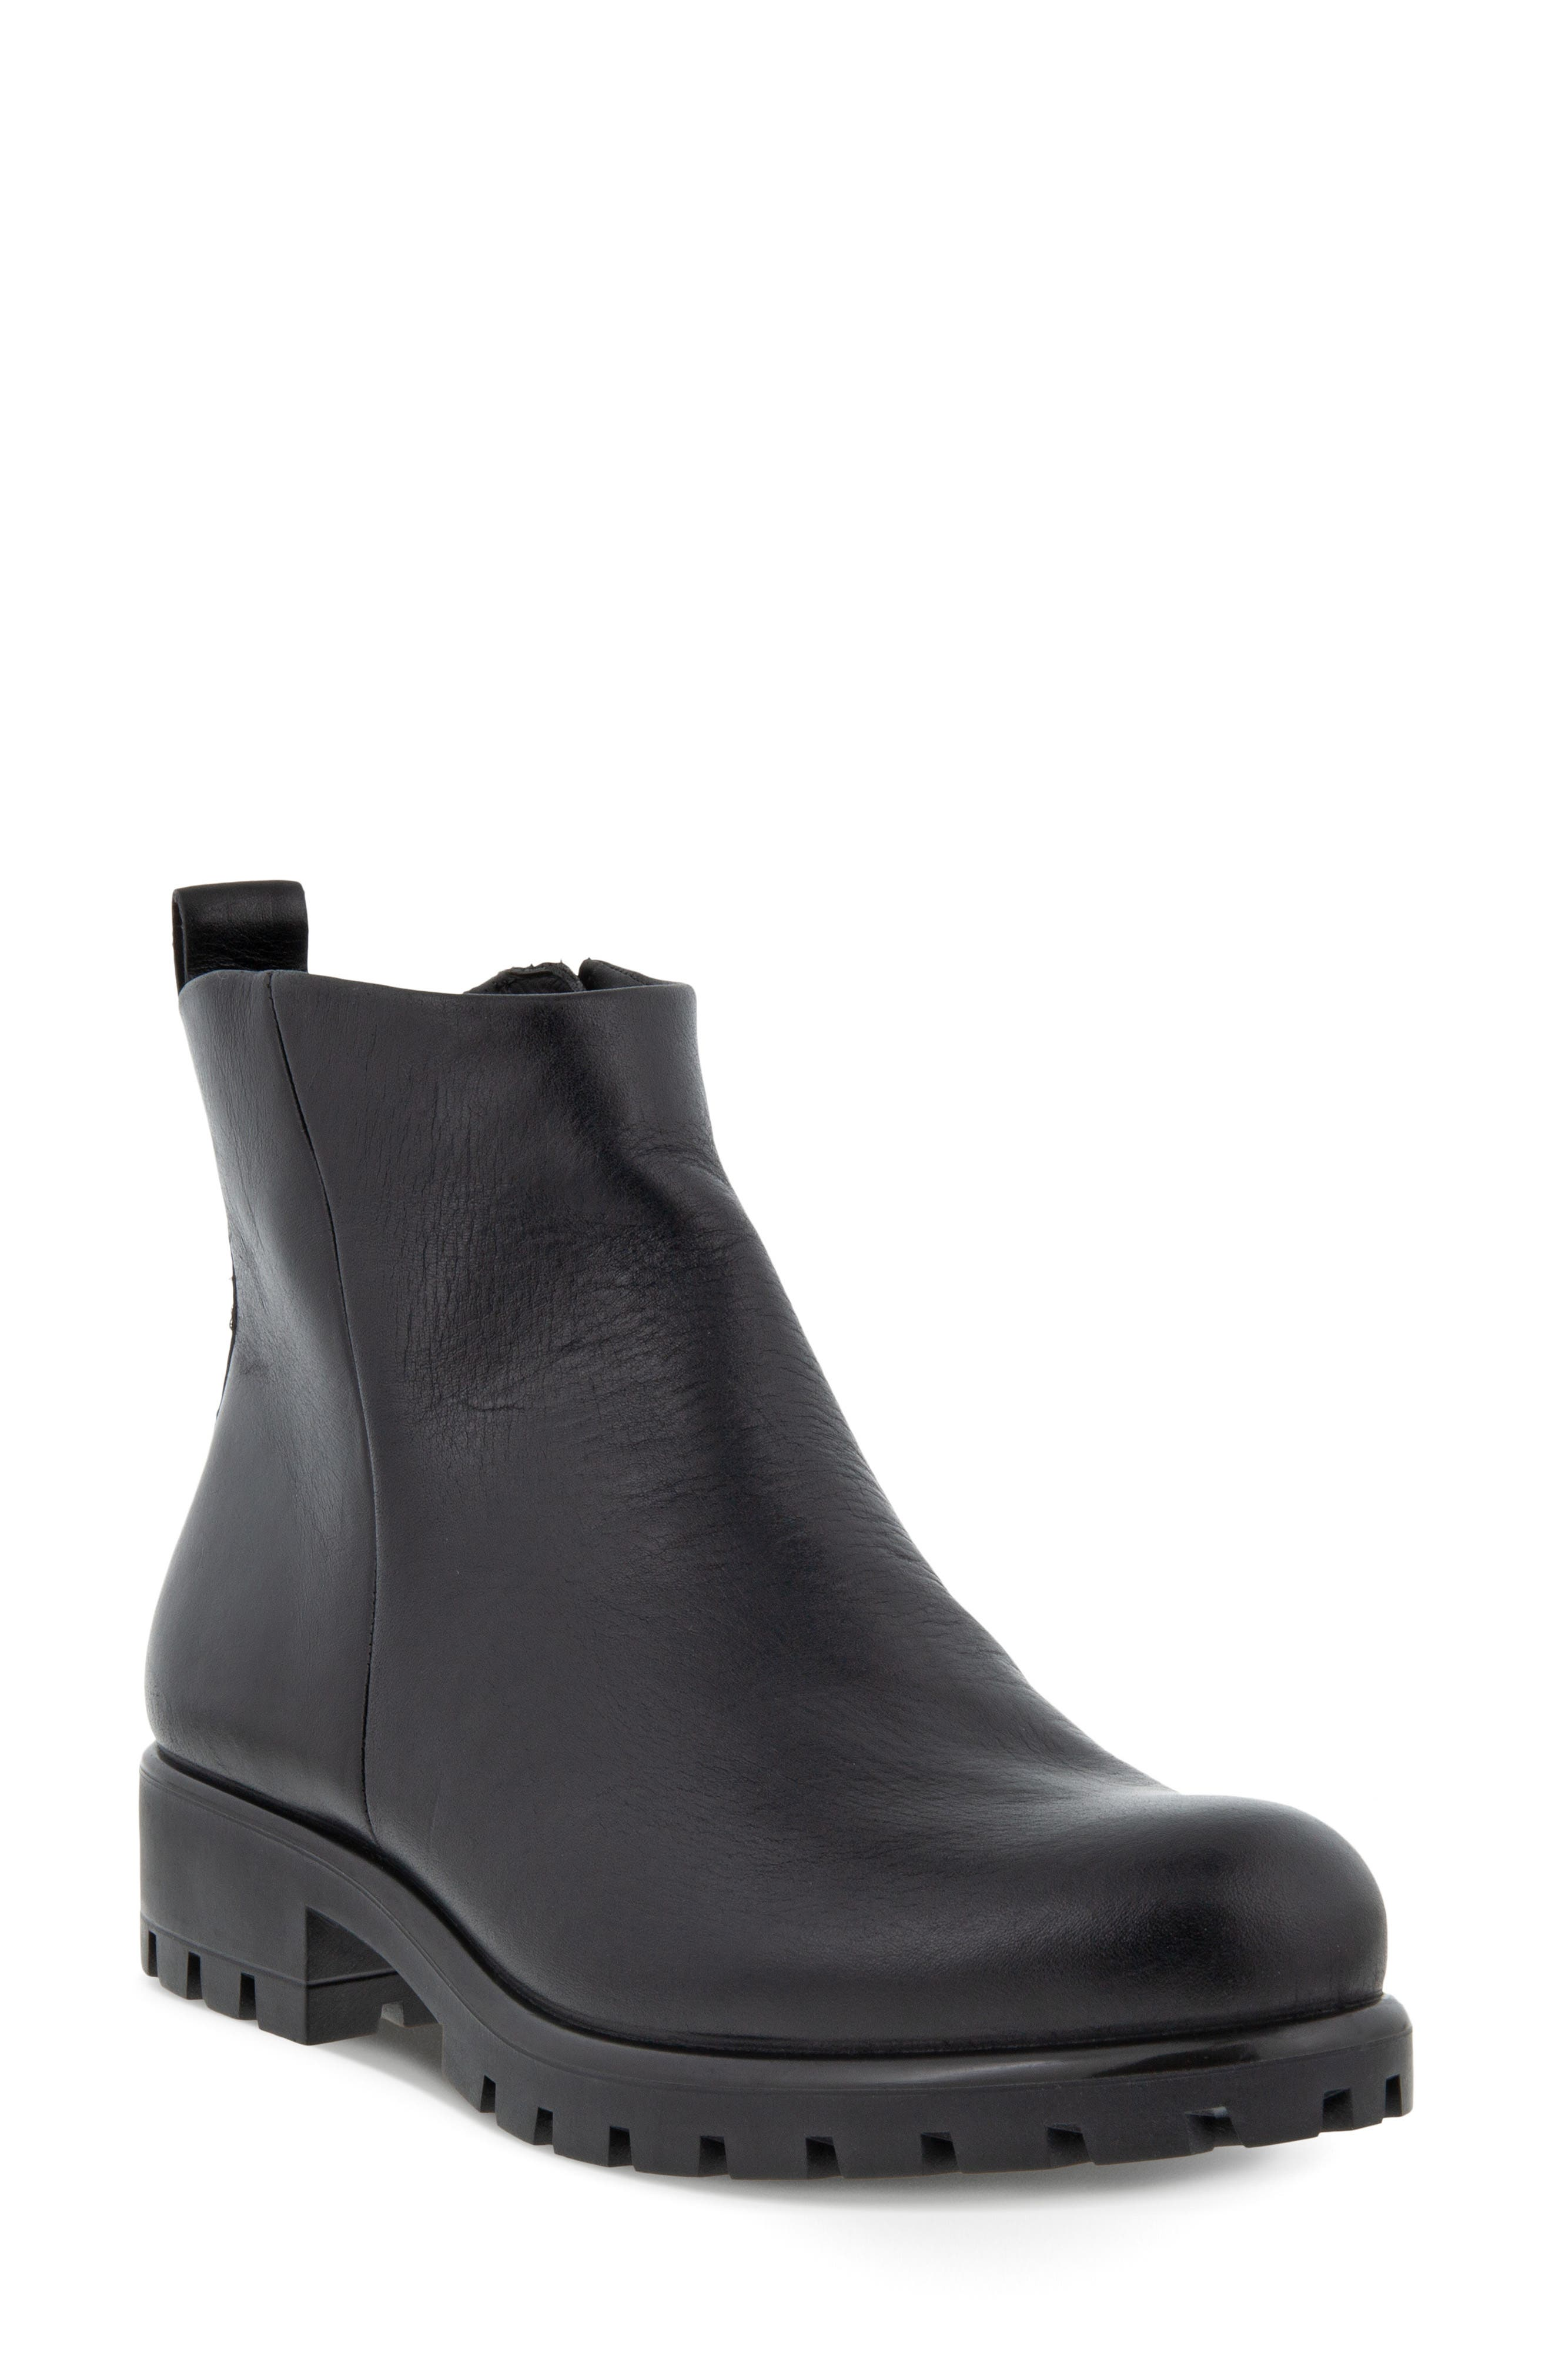 Women's Ecco Modtray Water Resistant Ankle Boot